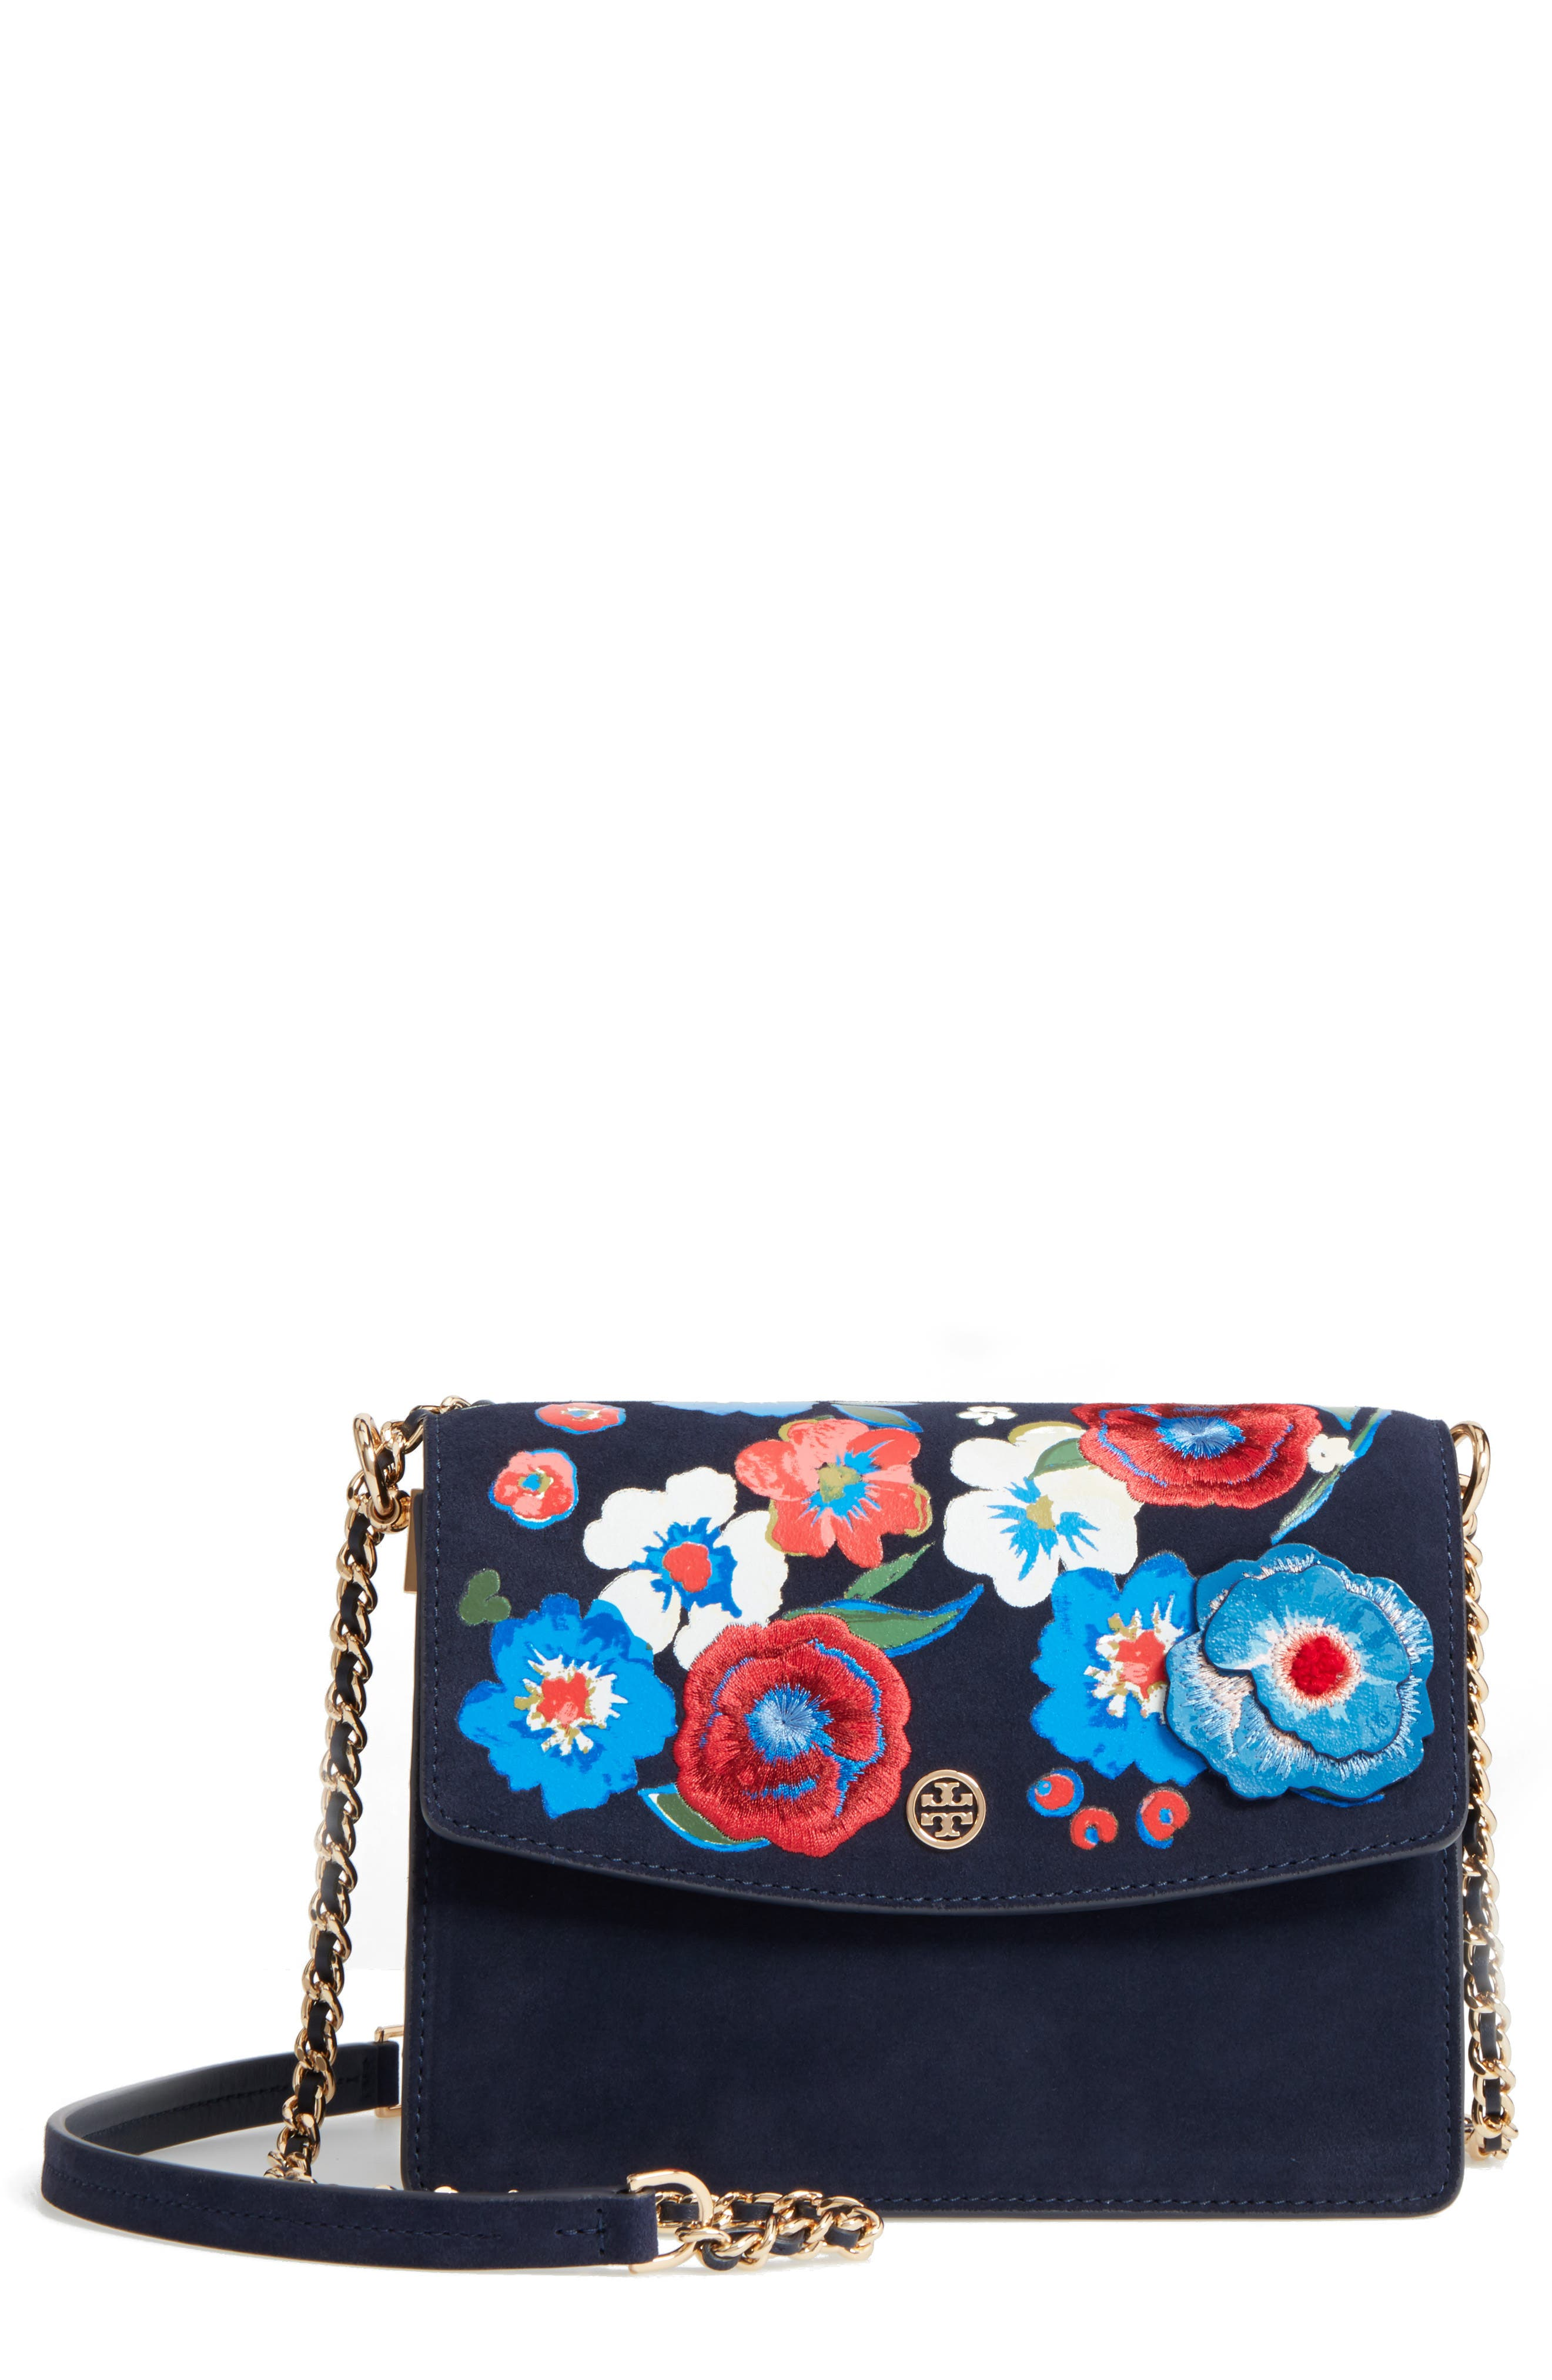 Main Image - Tory Burch Parker Flower Embroidered Leather Shoulder/Crossbody Bag